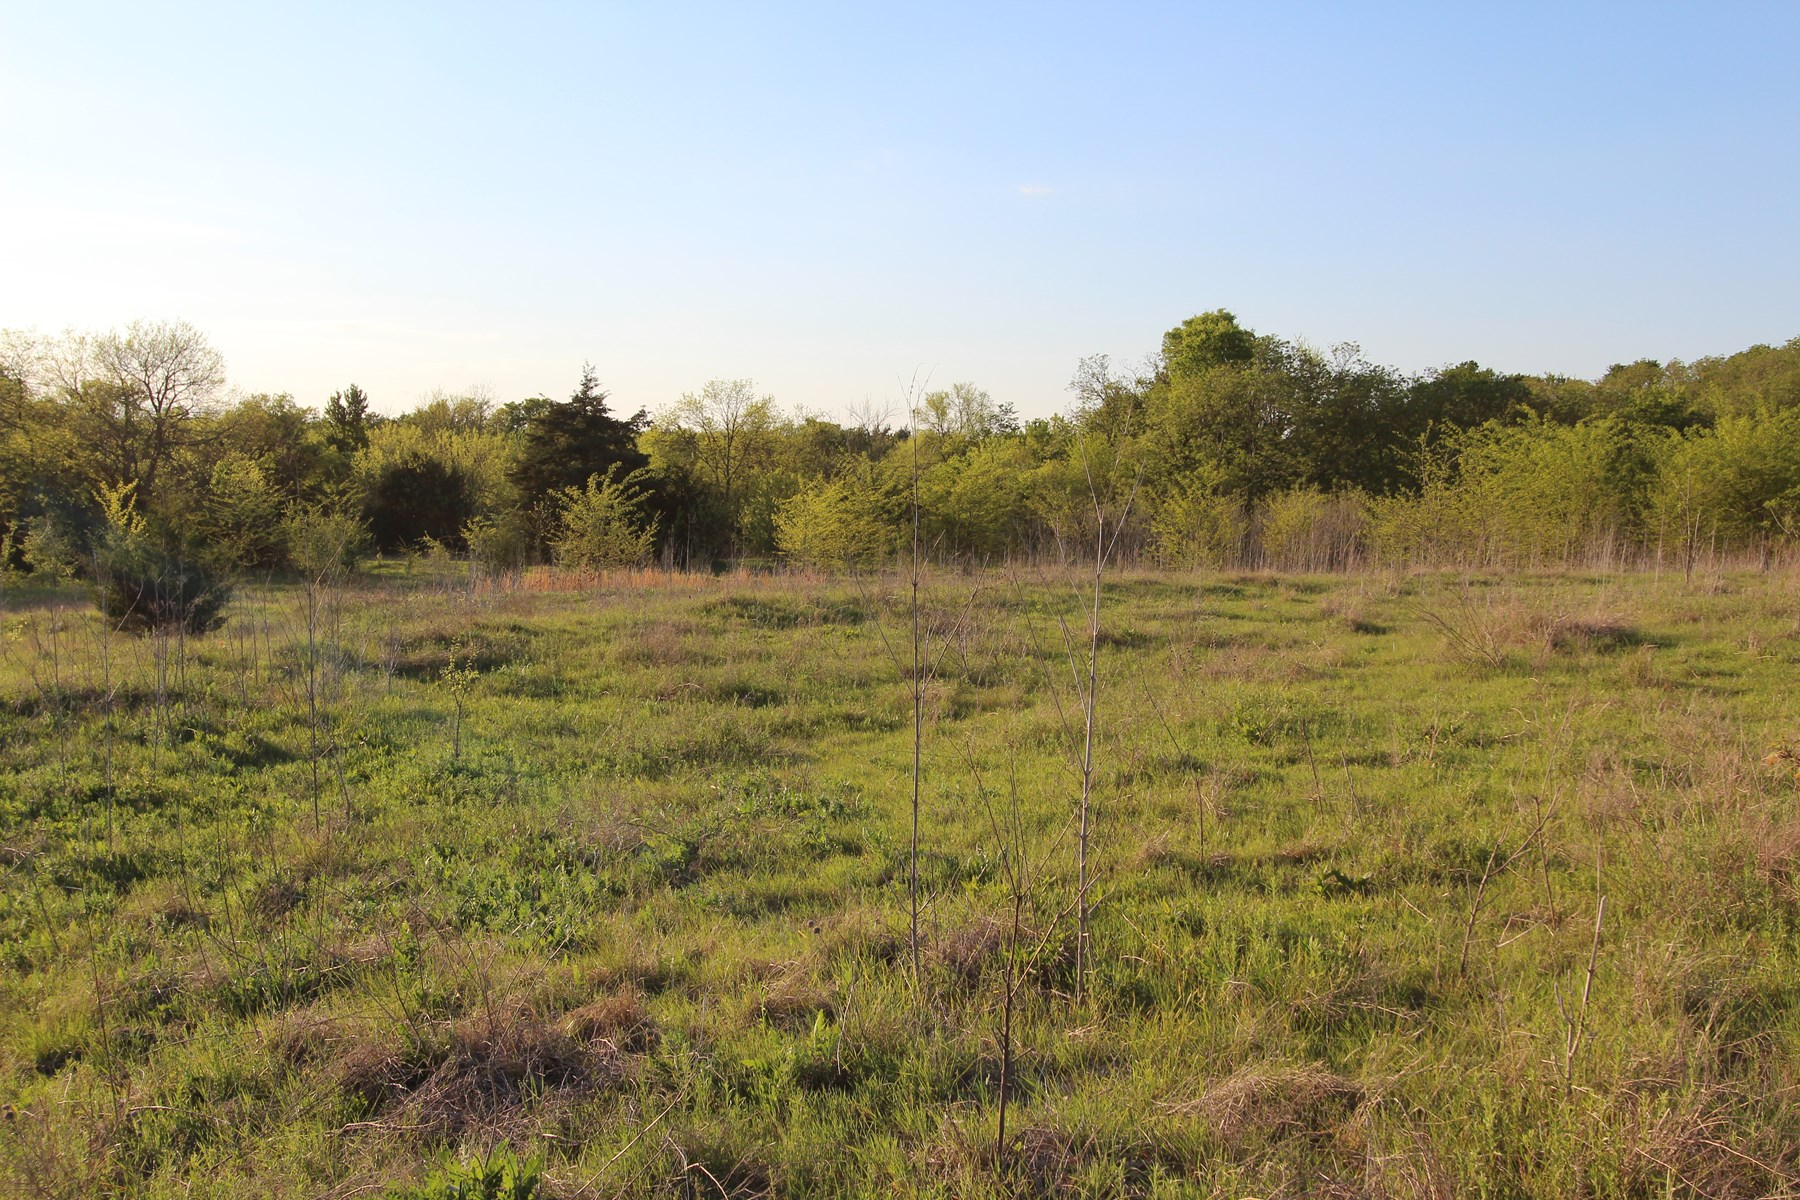 Country Home Build Site for Sale in Lamar County, Texas